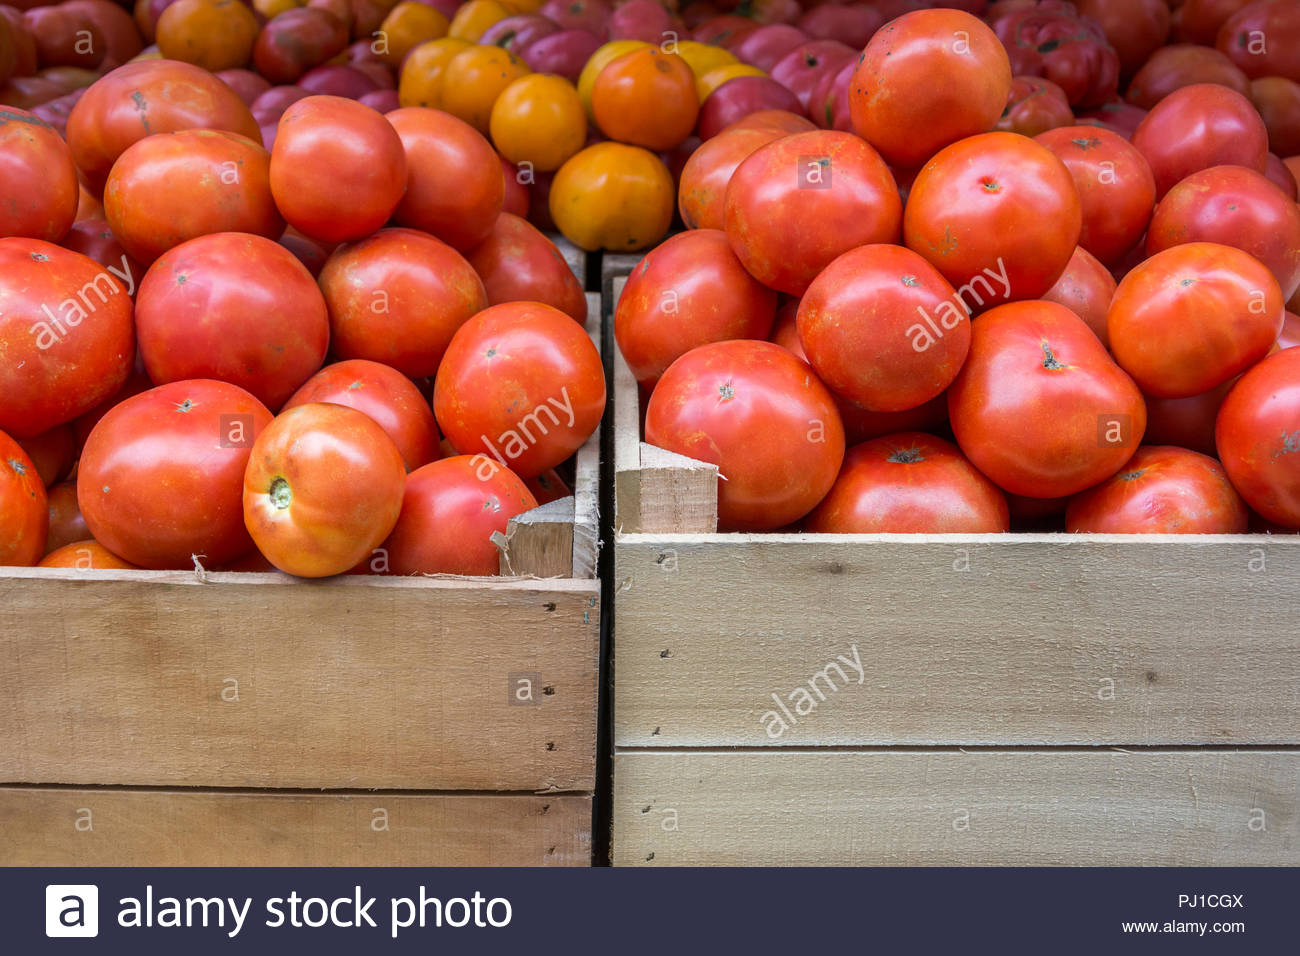 Fresh, ripe tomatoes in wood crates at a farmer's market. Stock Photo